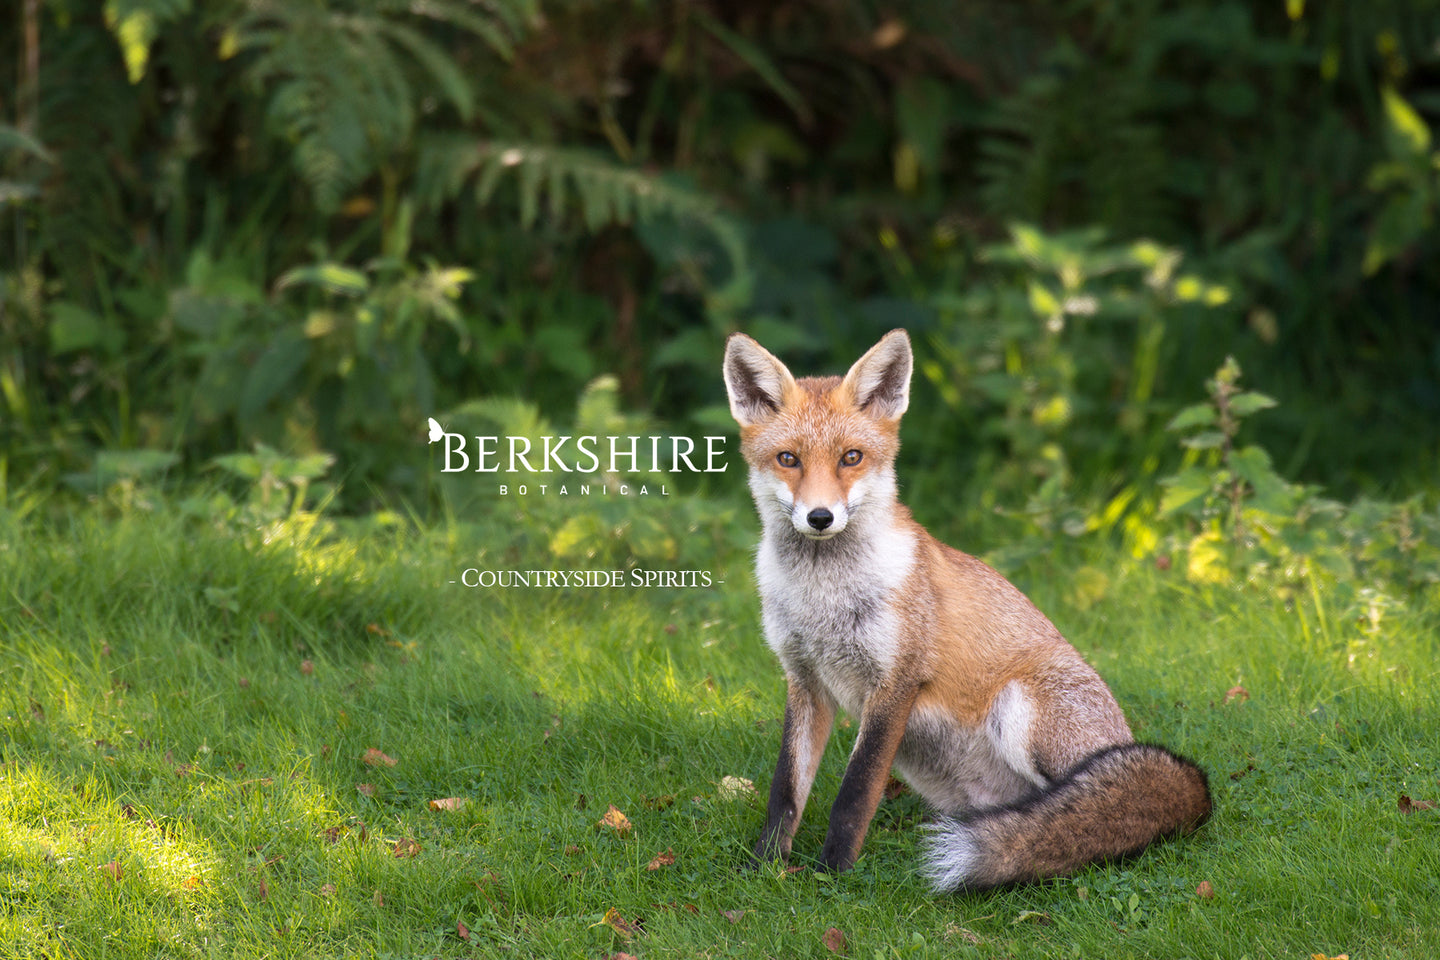 Berkshire Botanical Countryside Spirits